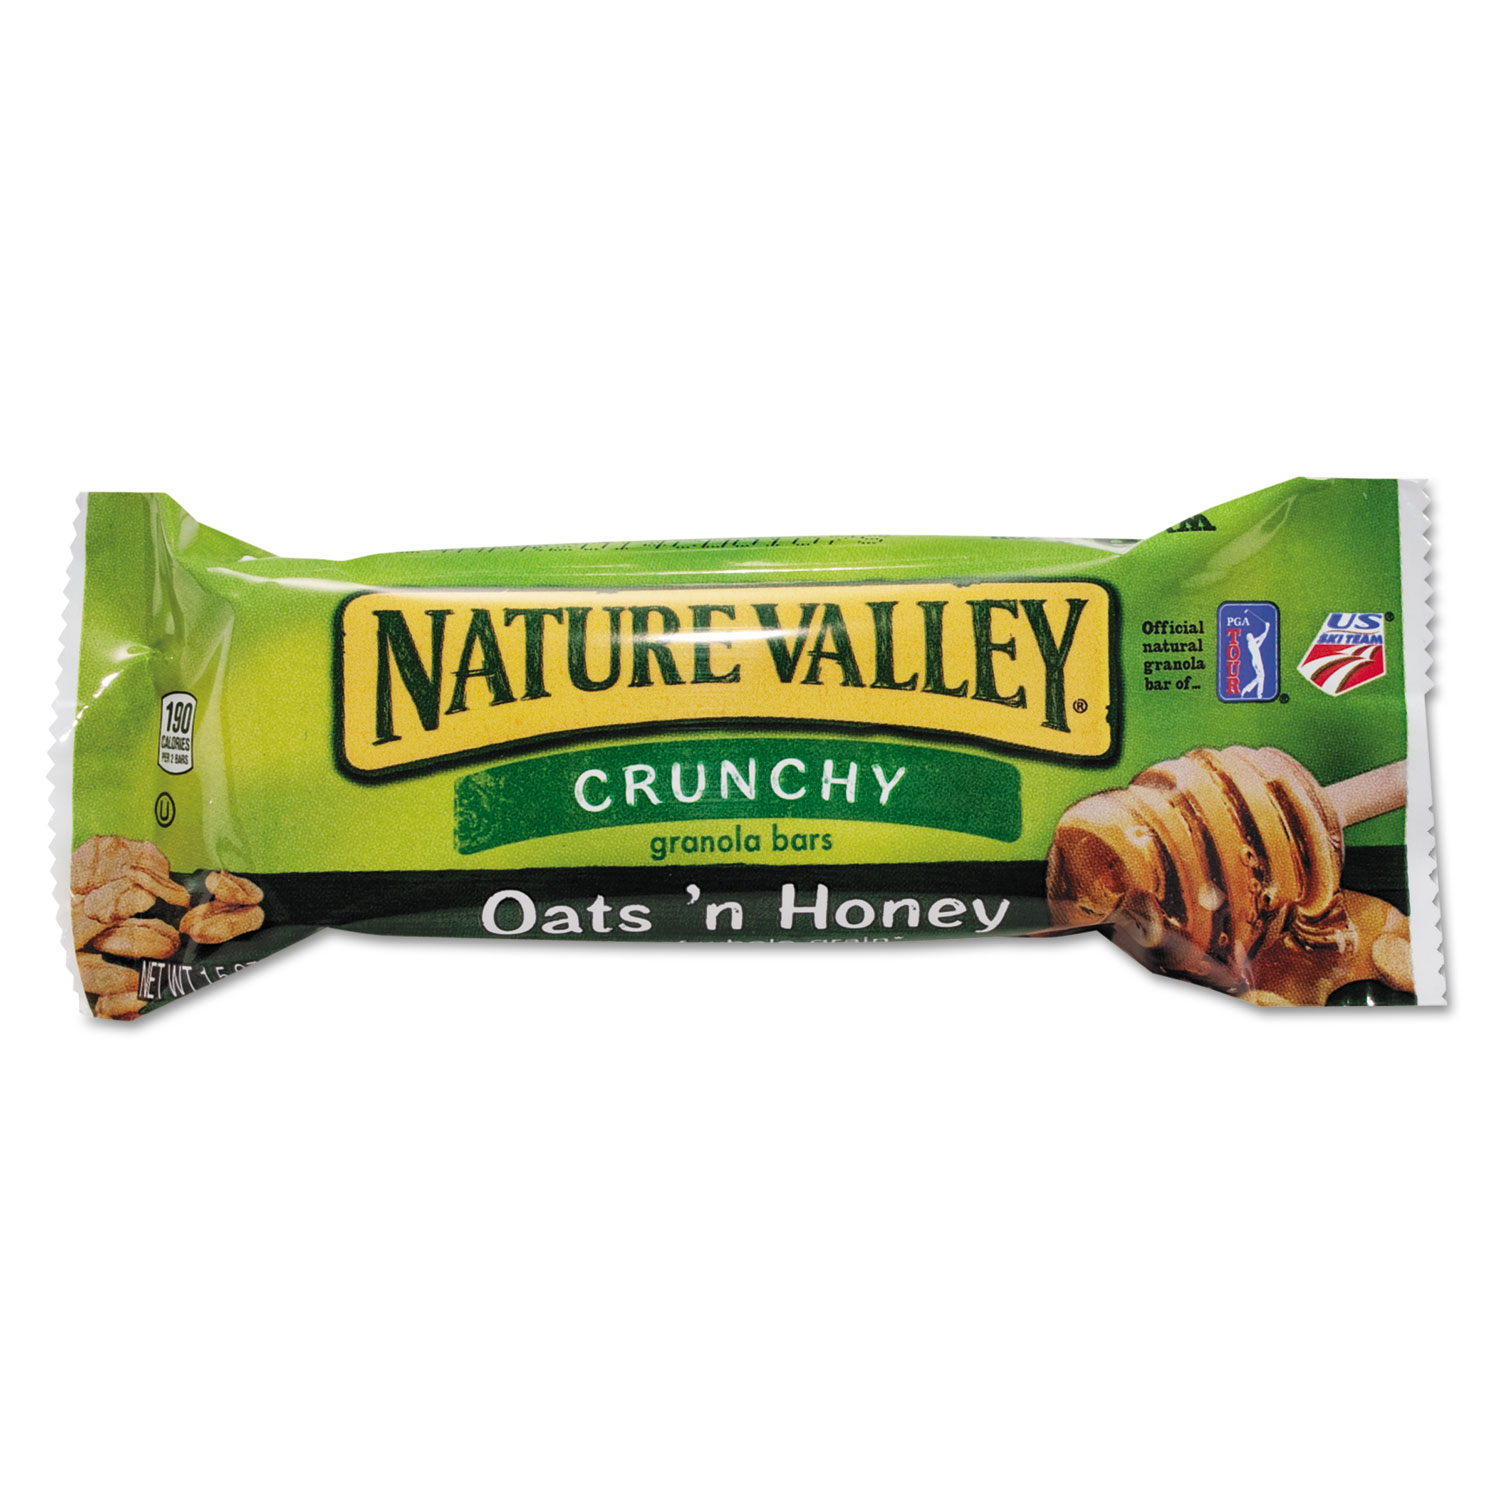 granola bars valley nature bar cereal honey oats nutrition box oz crunchy snack advantus brand amazon 5oz qty pkg health